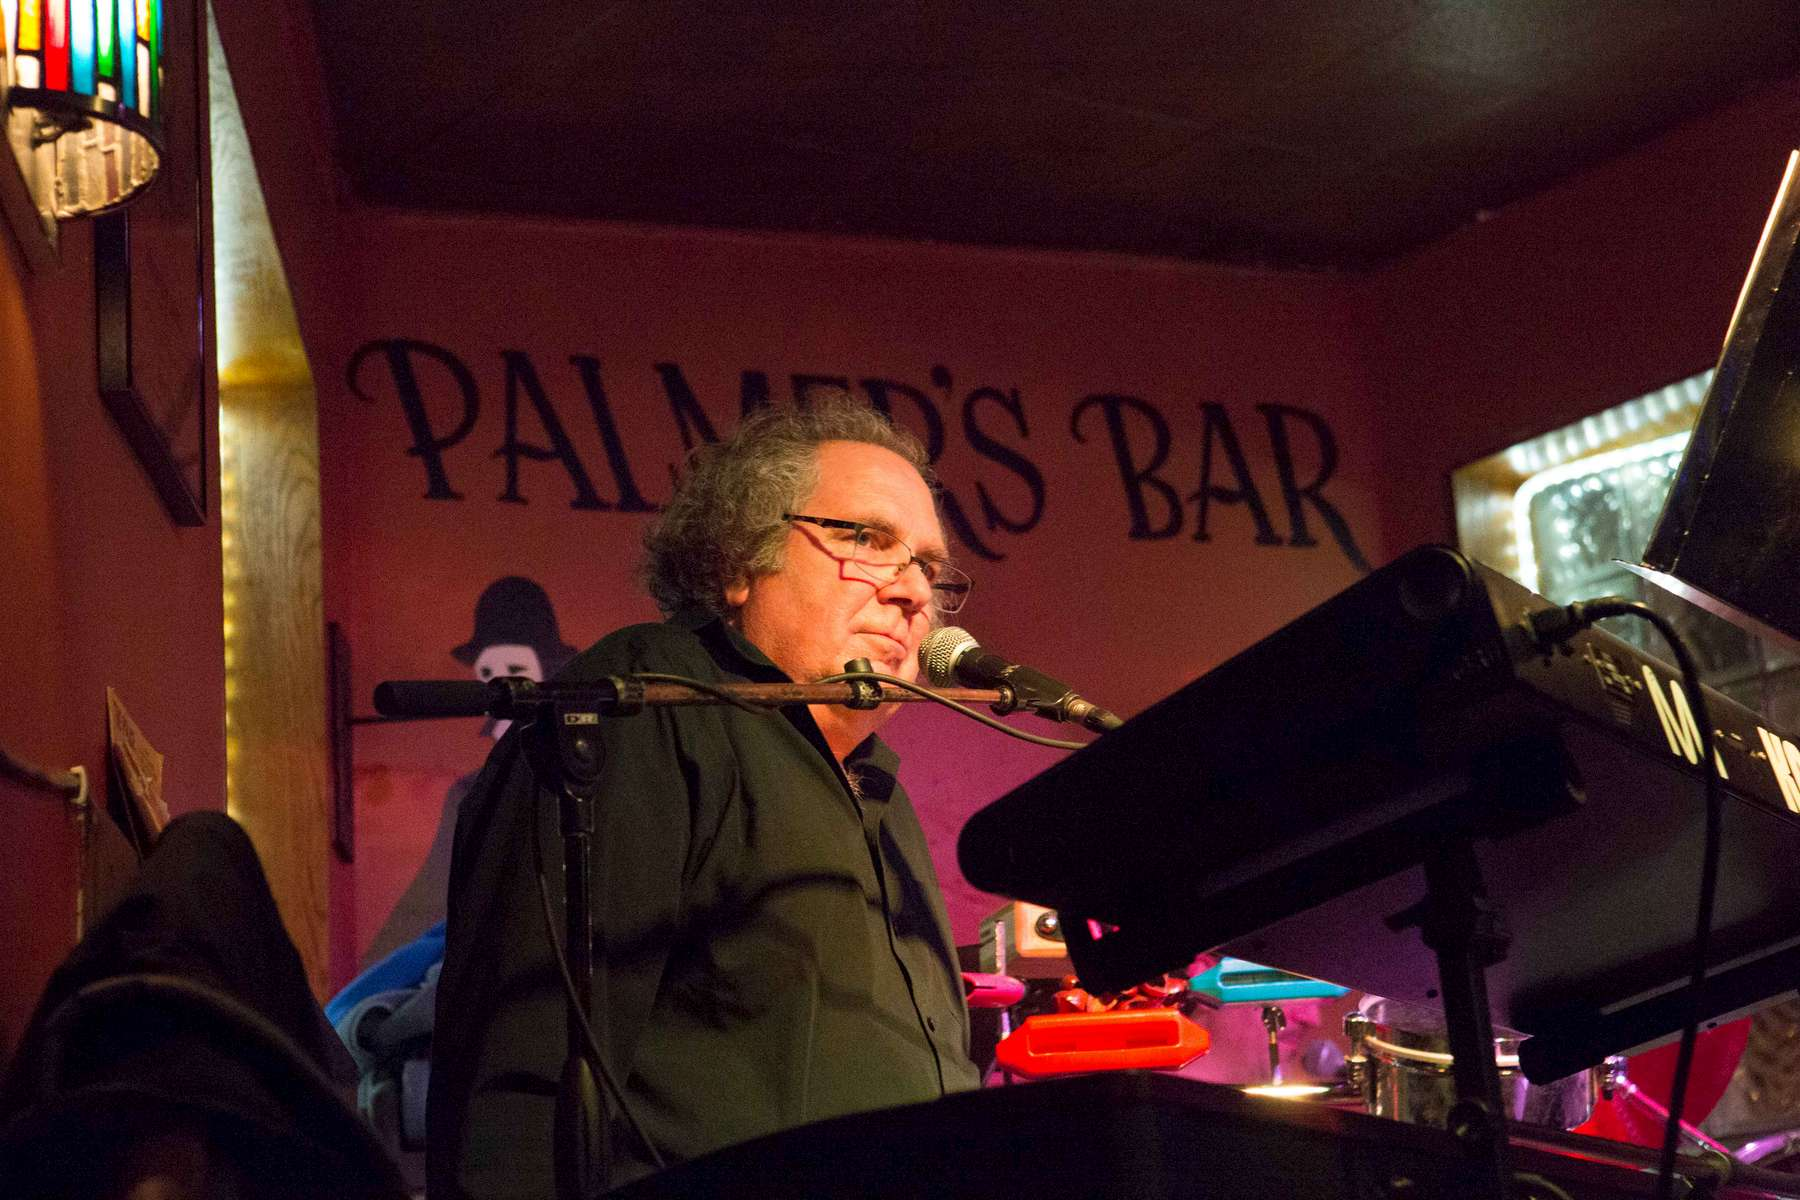 Palmers-Show-04-2017-28